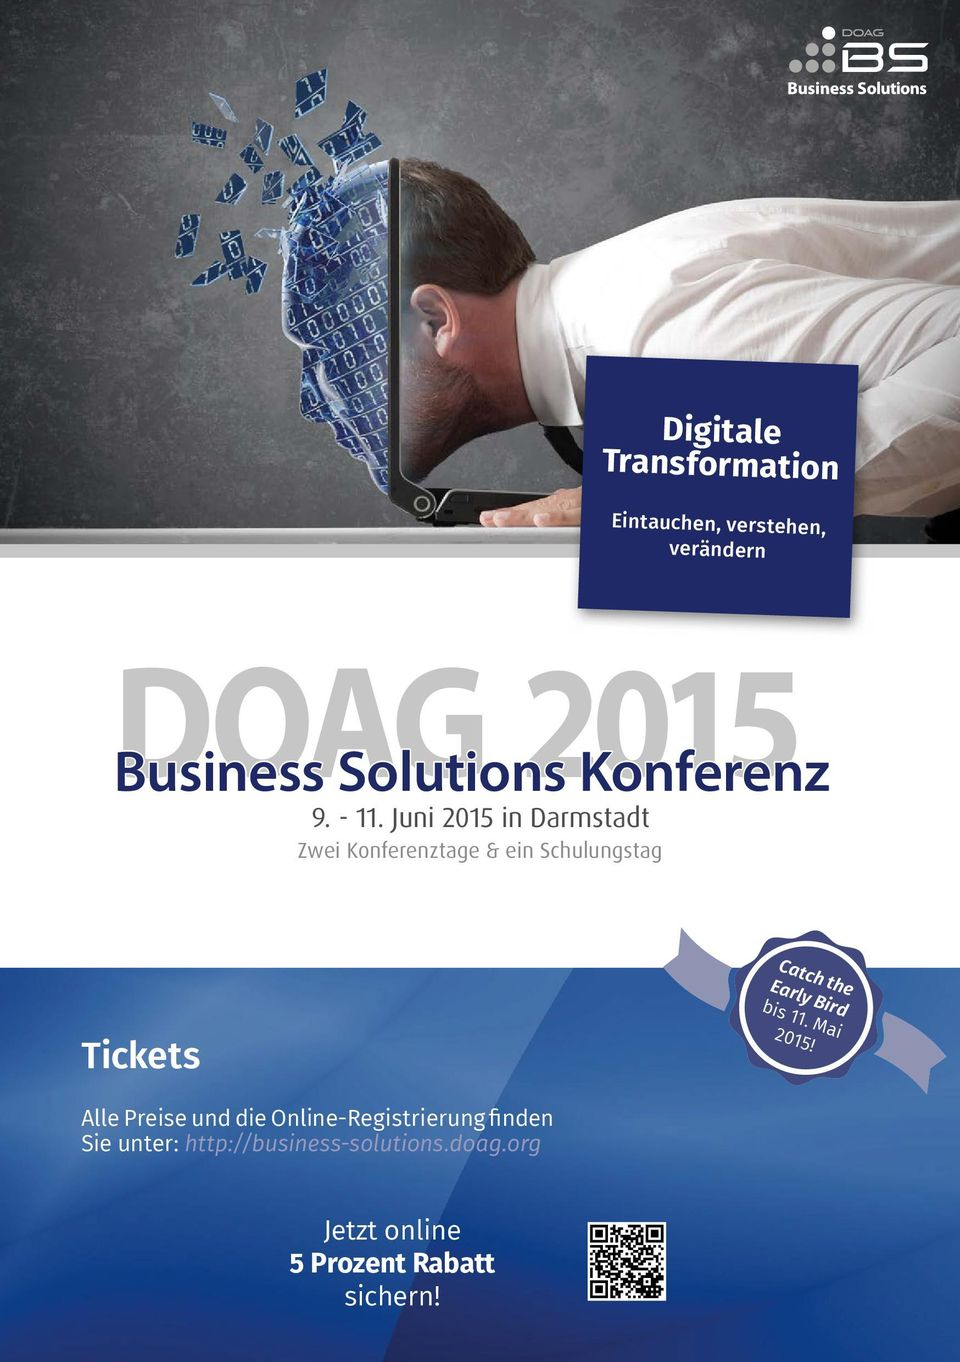 Konferenz Tickets Catch the Early Bird bis 11. Mai 2015!